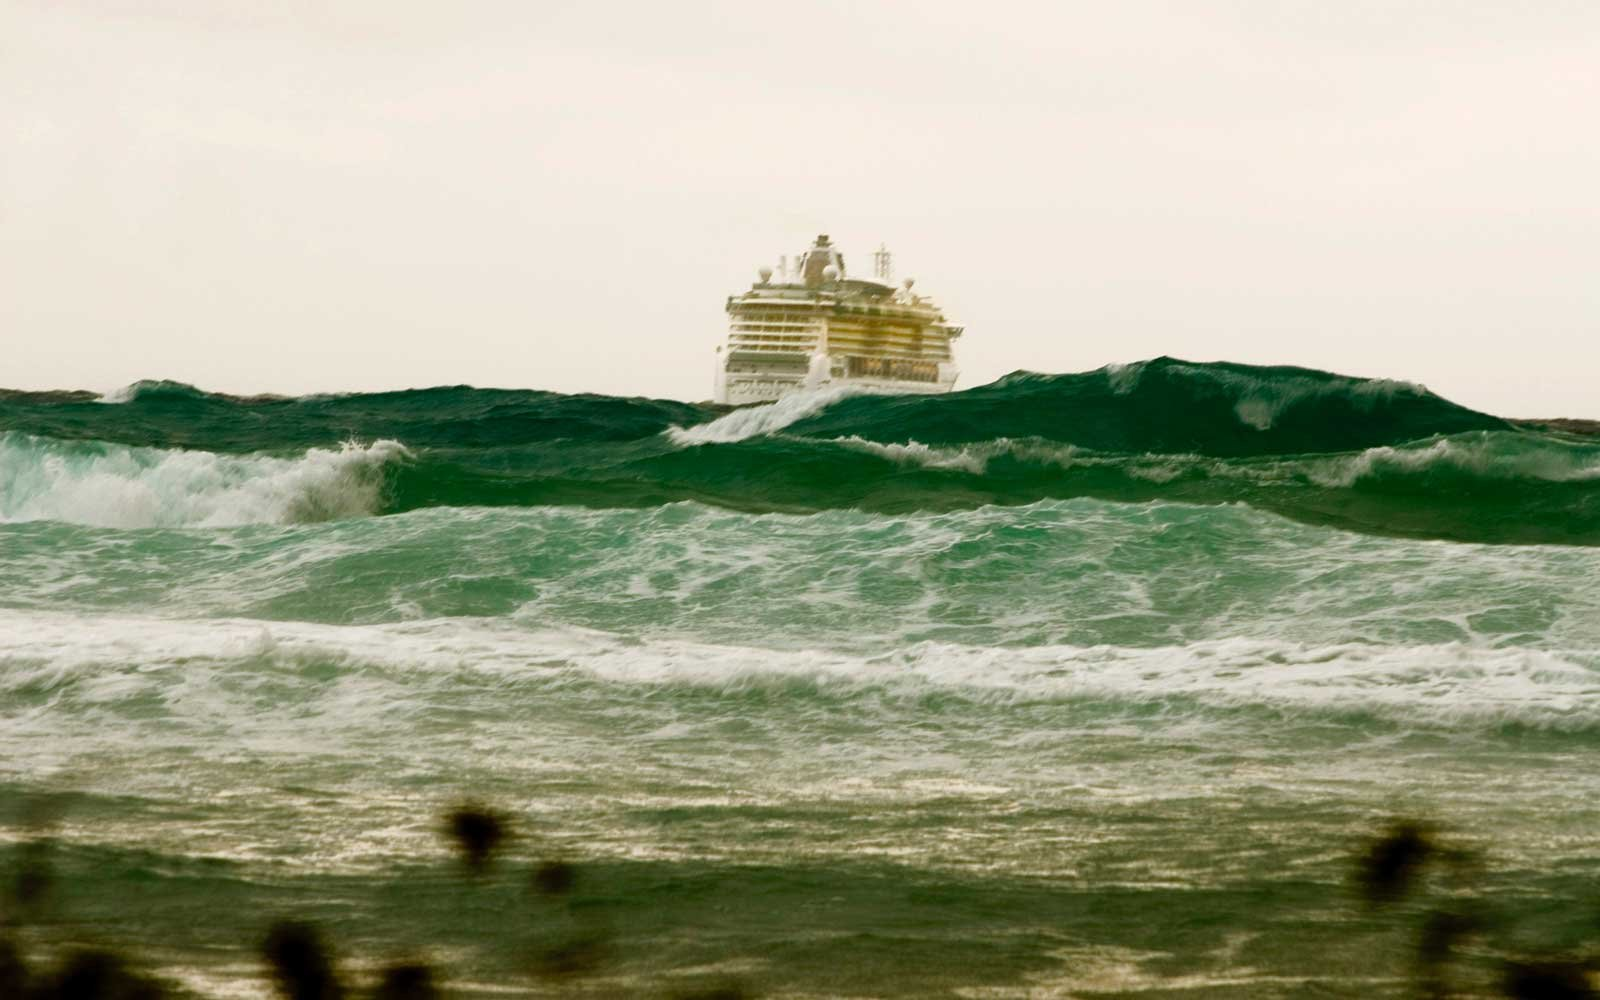 Cruise Ship in Stormy Caribbean Waters